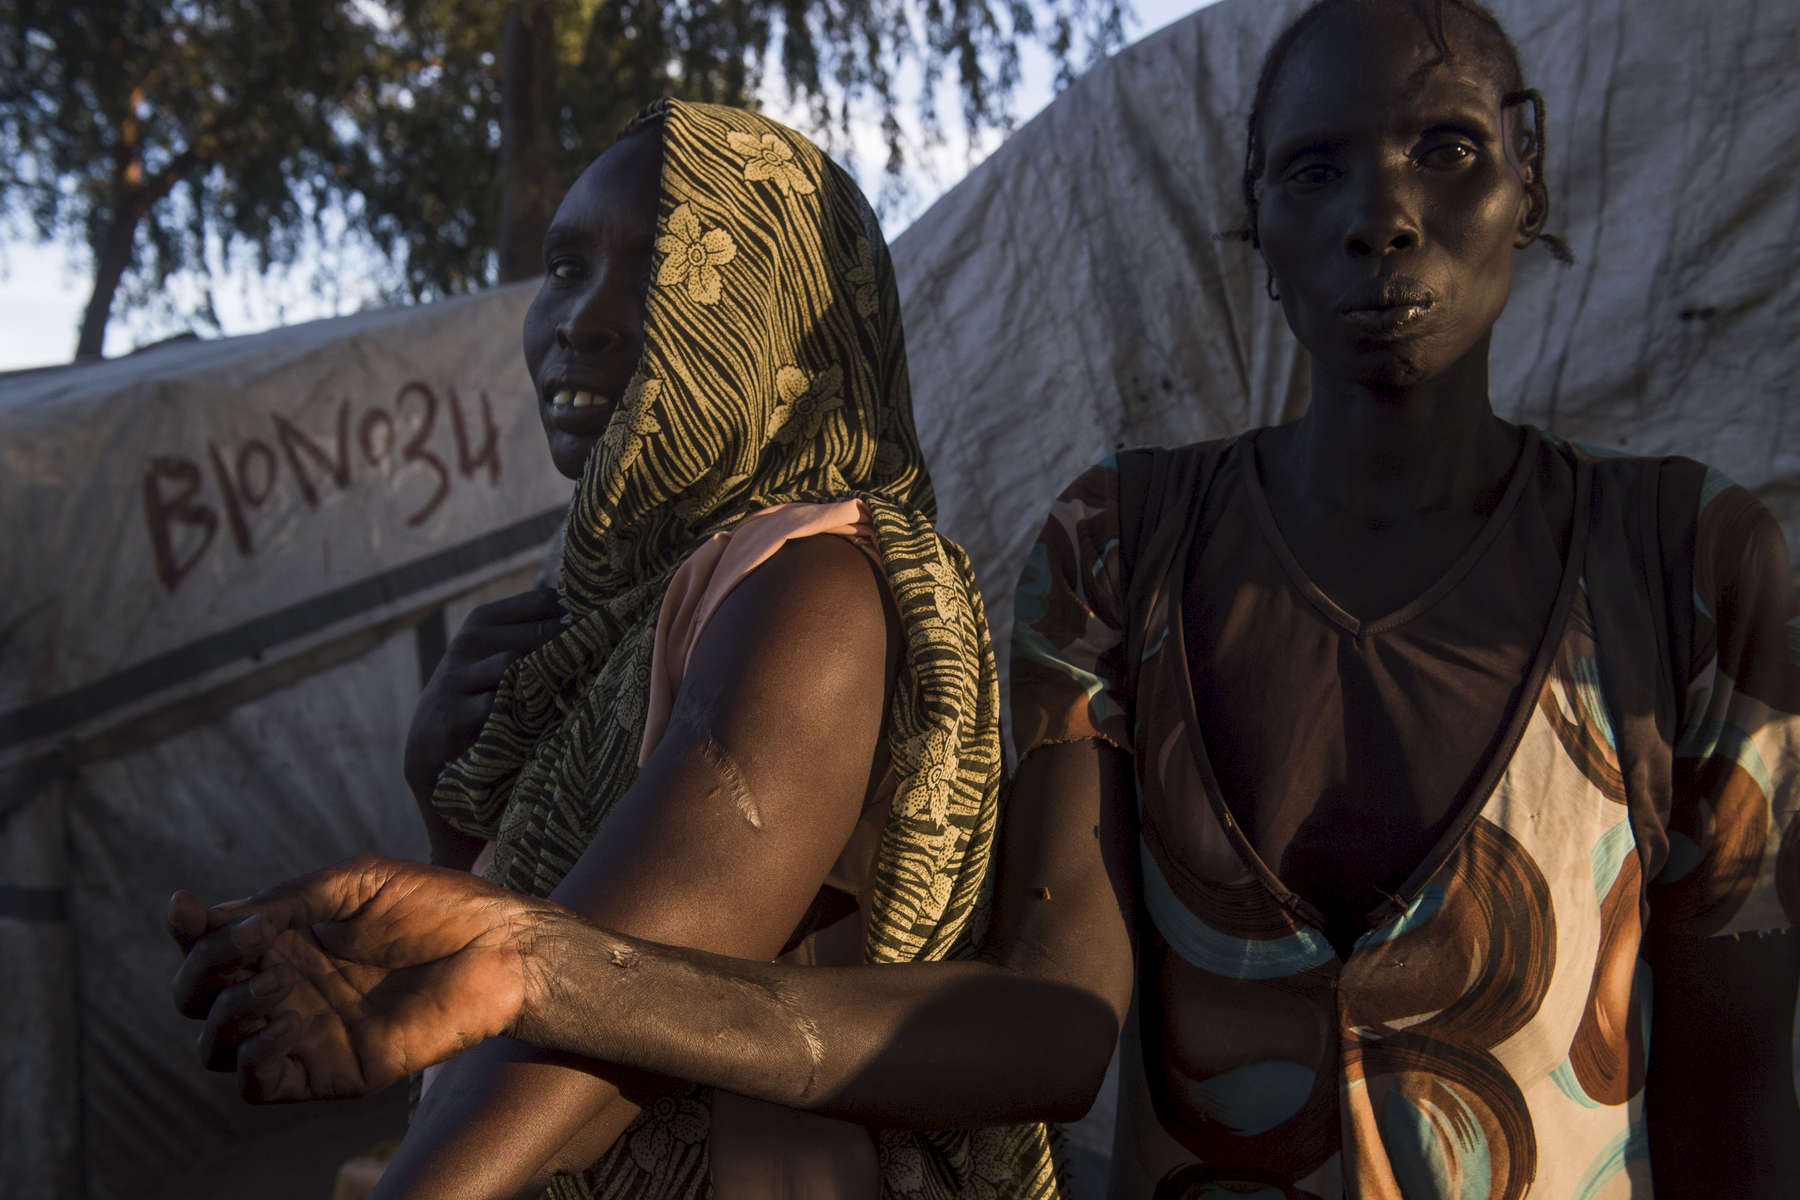 Anna Nyachout, left, and Elizabeth Nayandang, 48, right, residents of the Protection of Civilians (PoC) site adjacent to the United Nations Mission in South Sudan base in Bor show their scars from bullet wounds suffered during the conflict.  The women are seen on Tuesday, 31 Oct. in Bor, South Sudan.